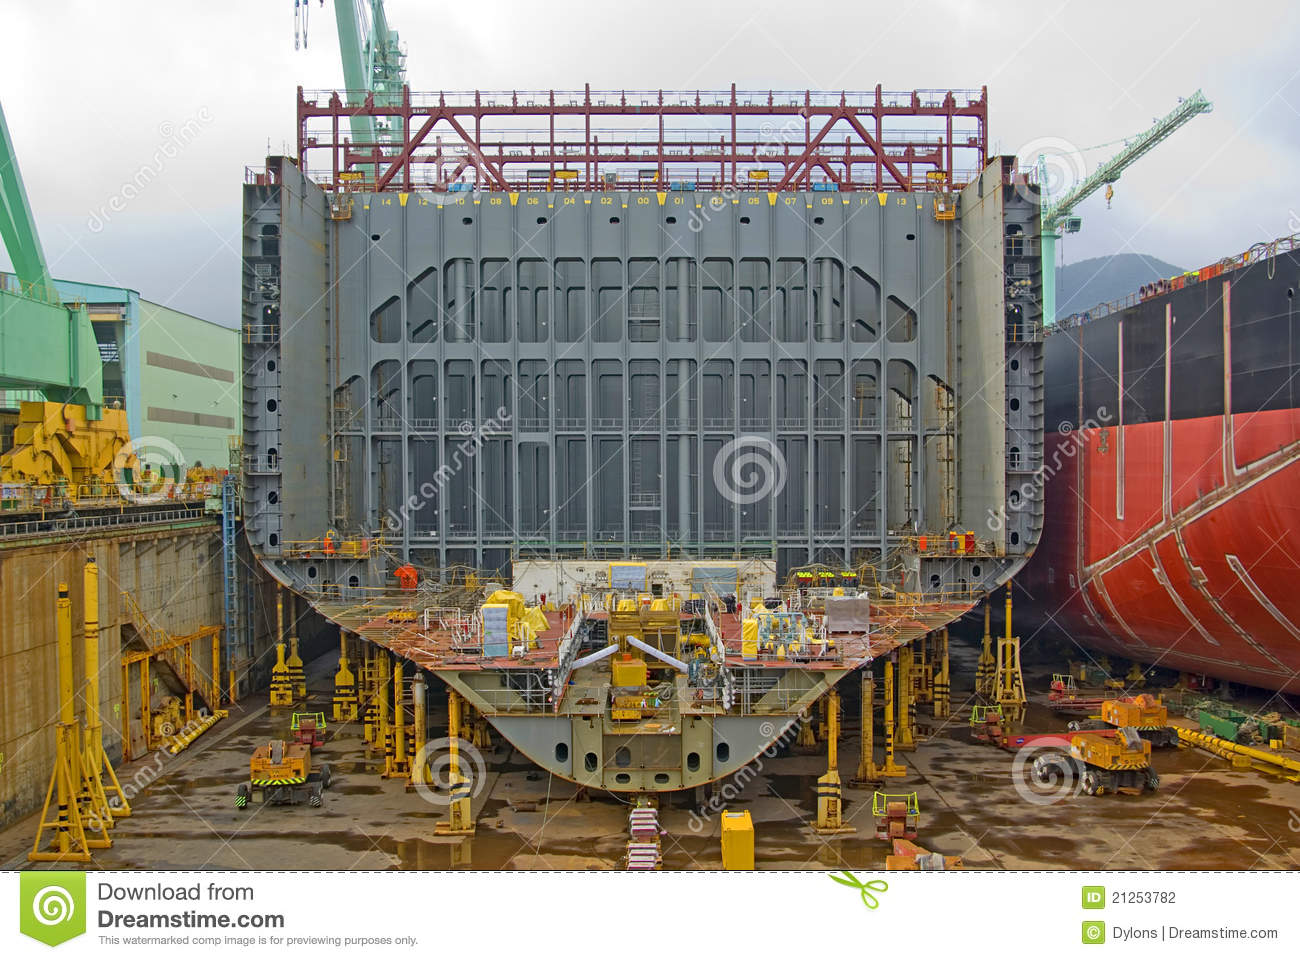 Image of ship under construction showing the internal steelwork.